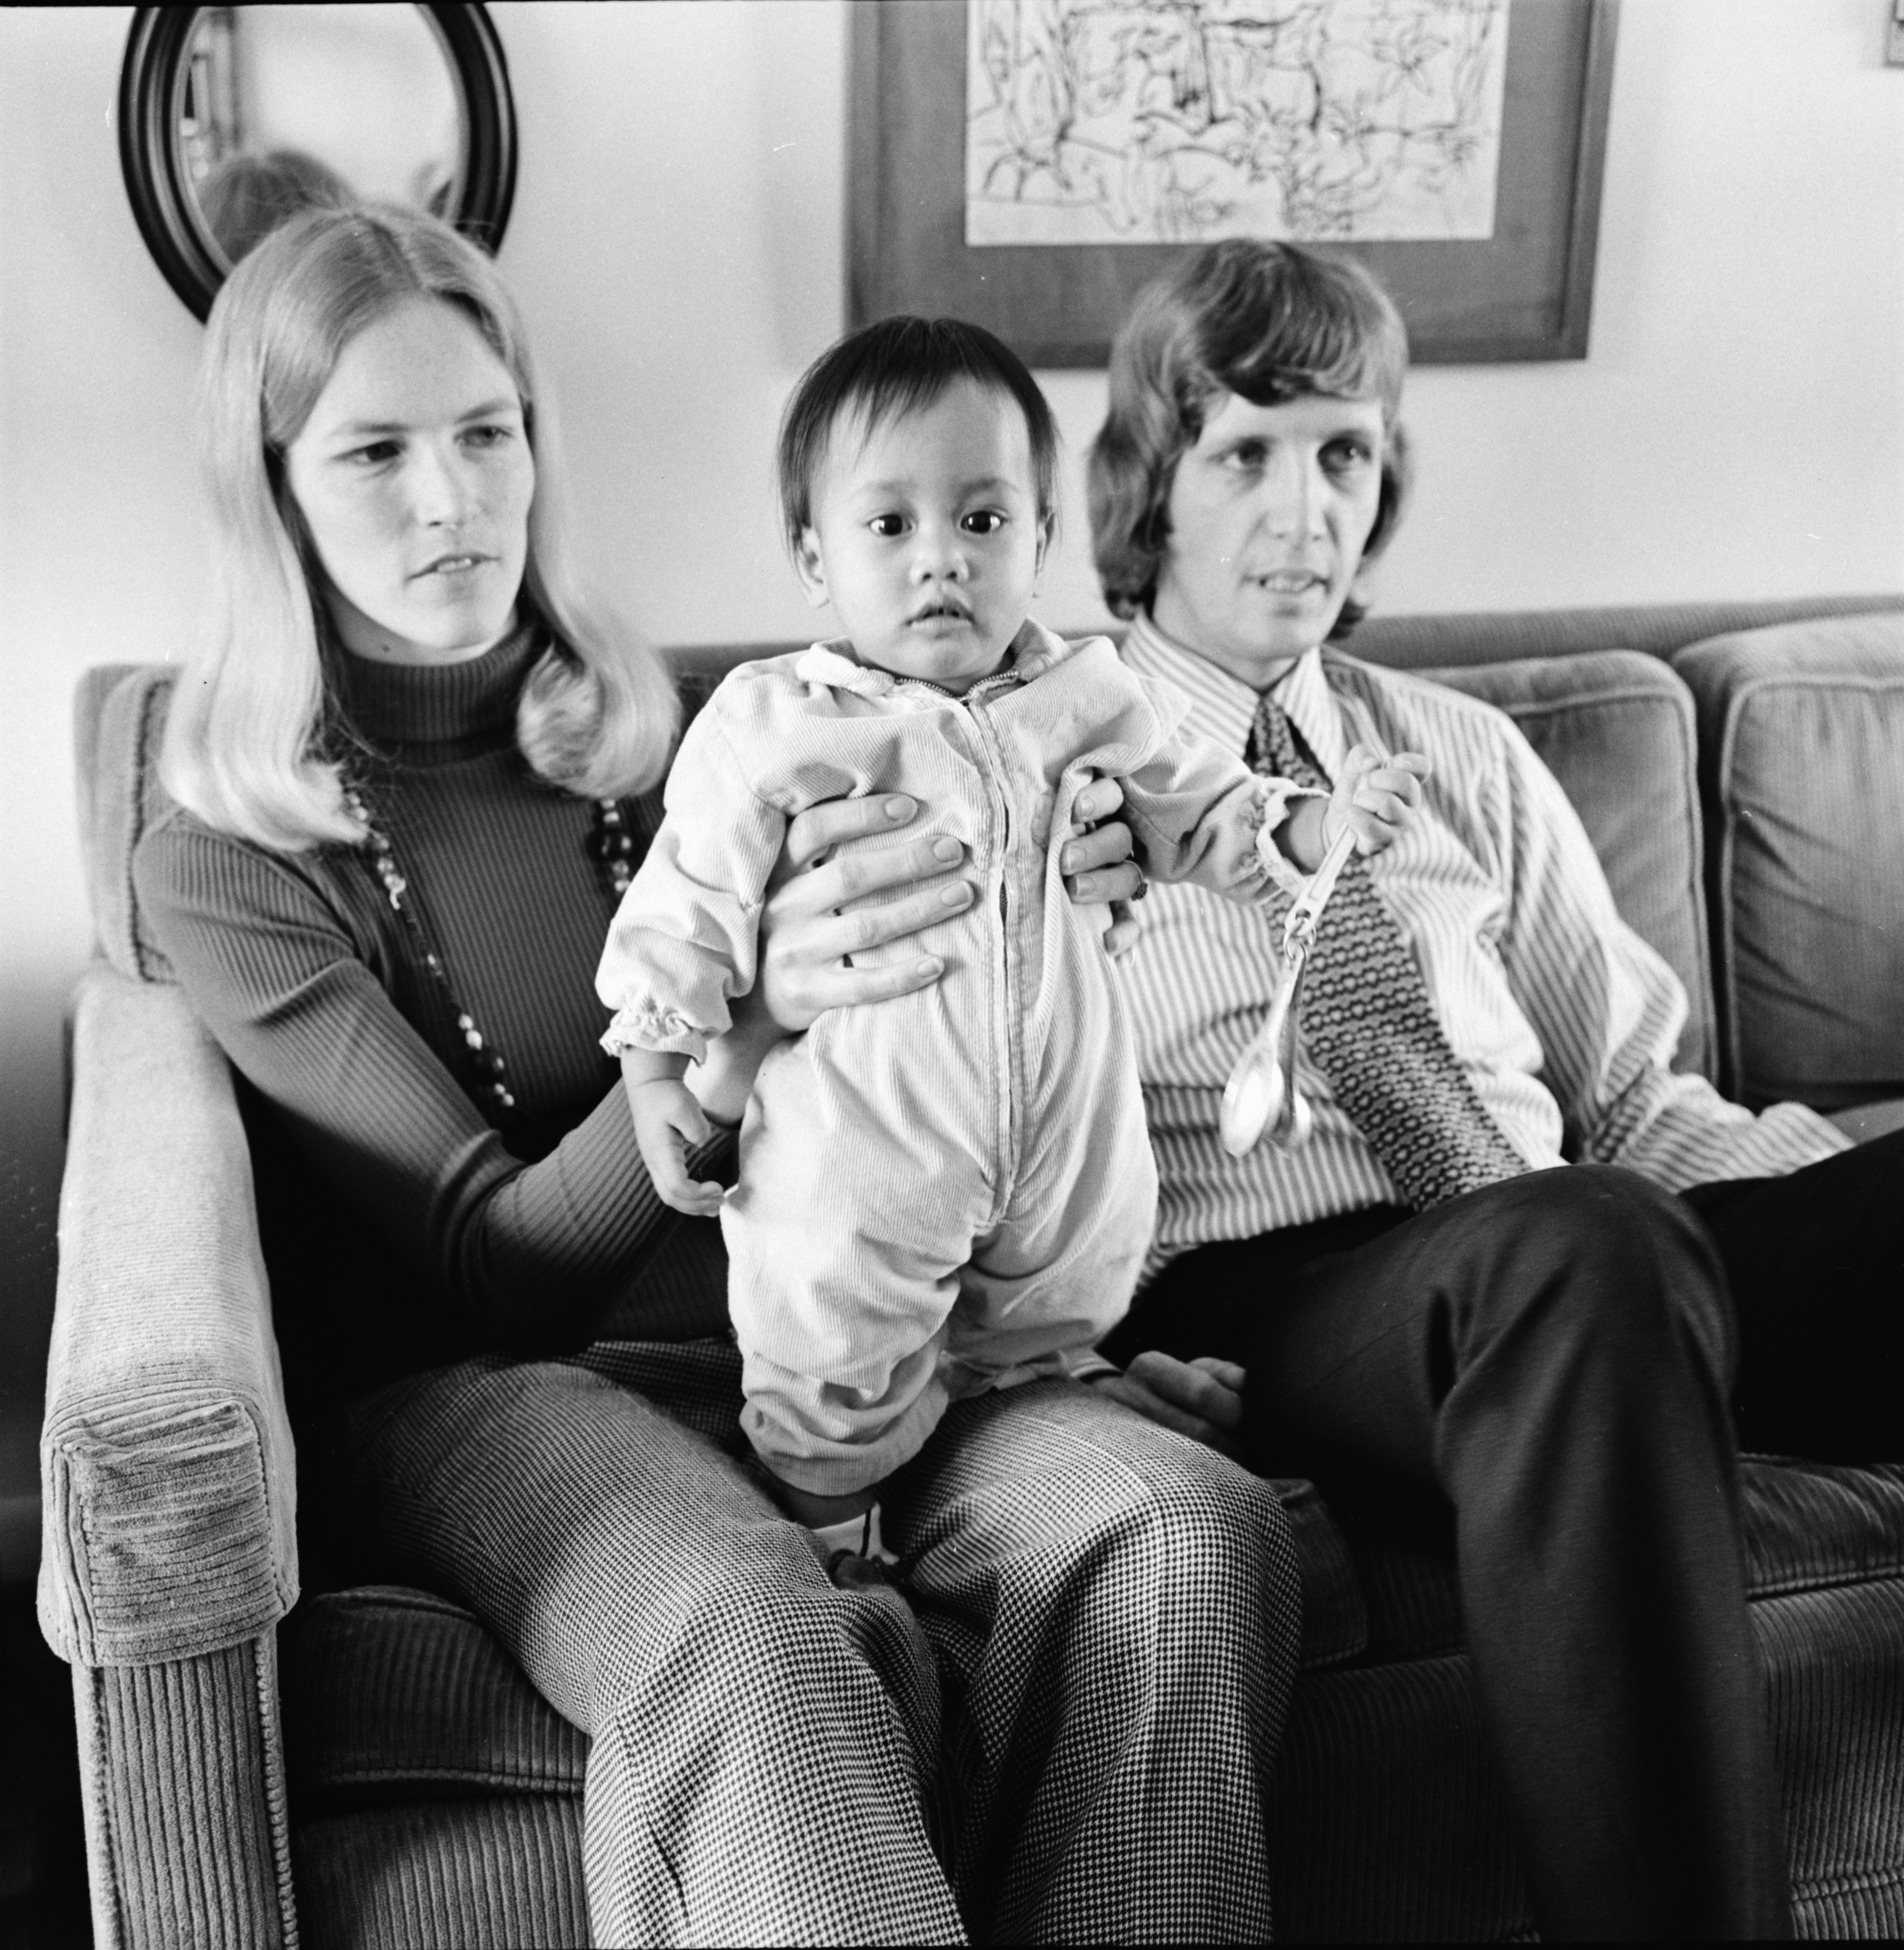 Palmer Family with Daughter Leila Adopted from Vietnam, April 1974 image